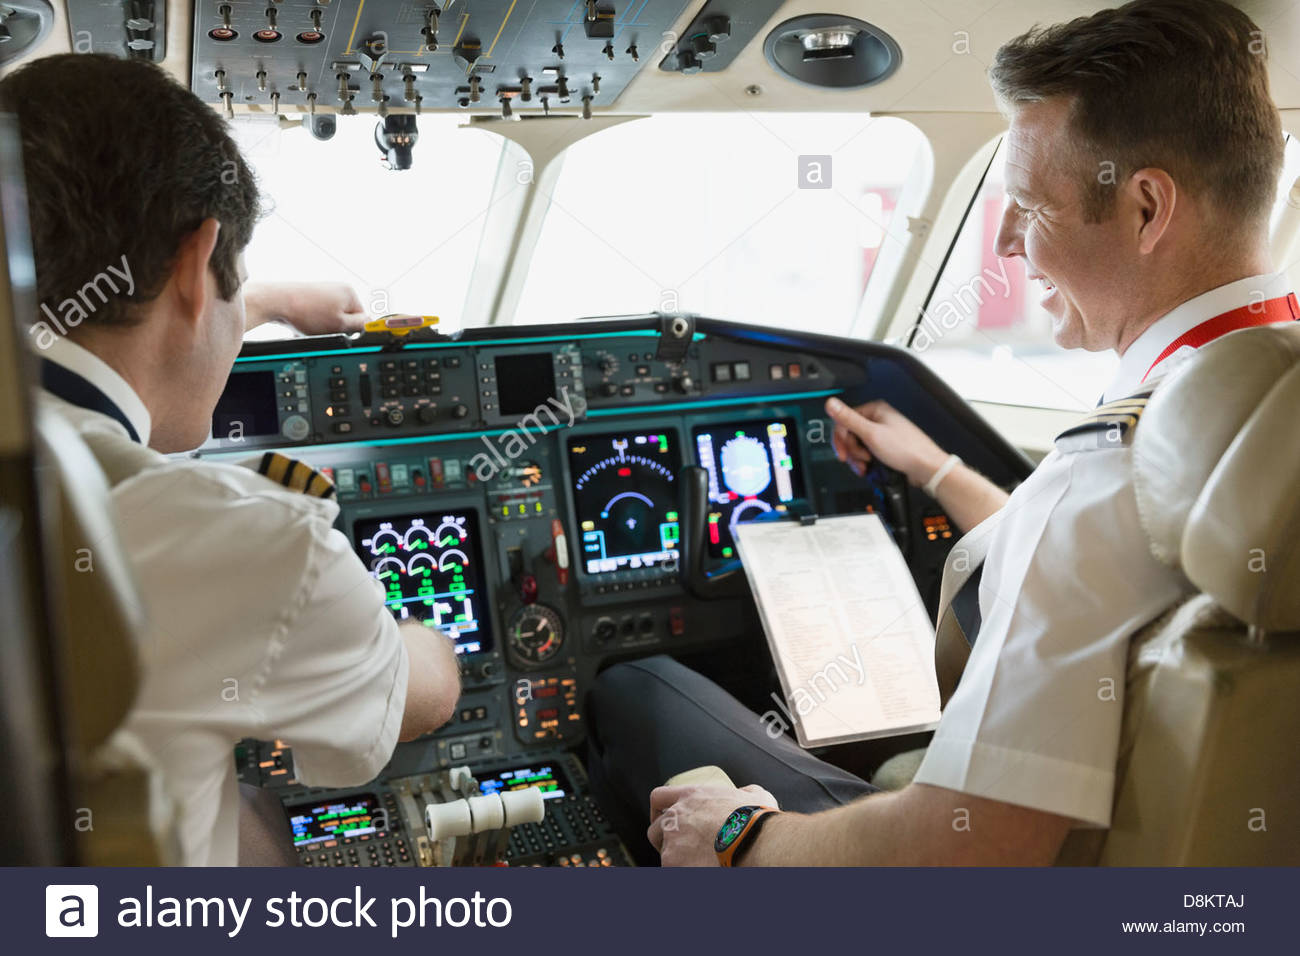 Male pilot and co-pilot checking instrument panel in airplane cockpit - Stock Image